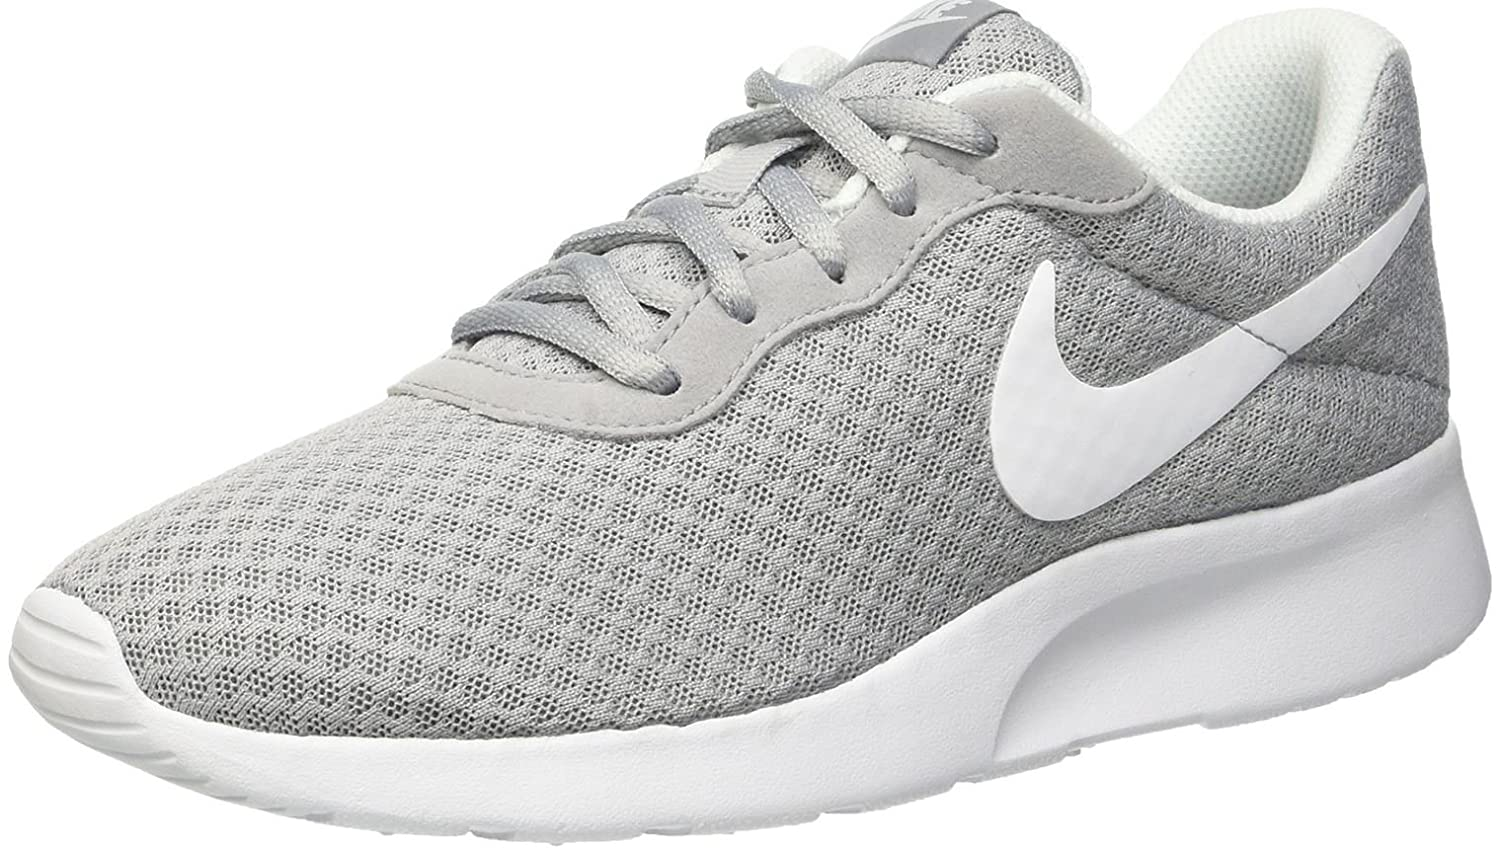 Nike Tanjun Women's Athletic Shoes | Products | Gray nike